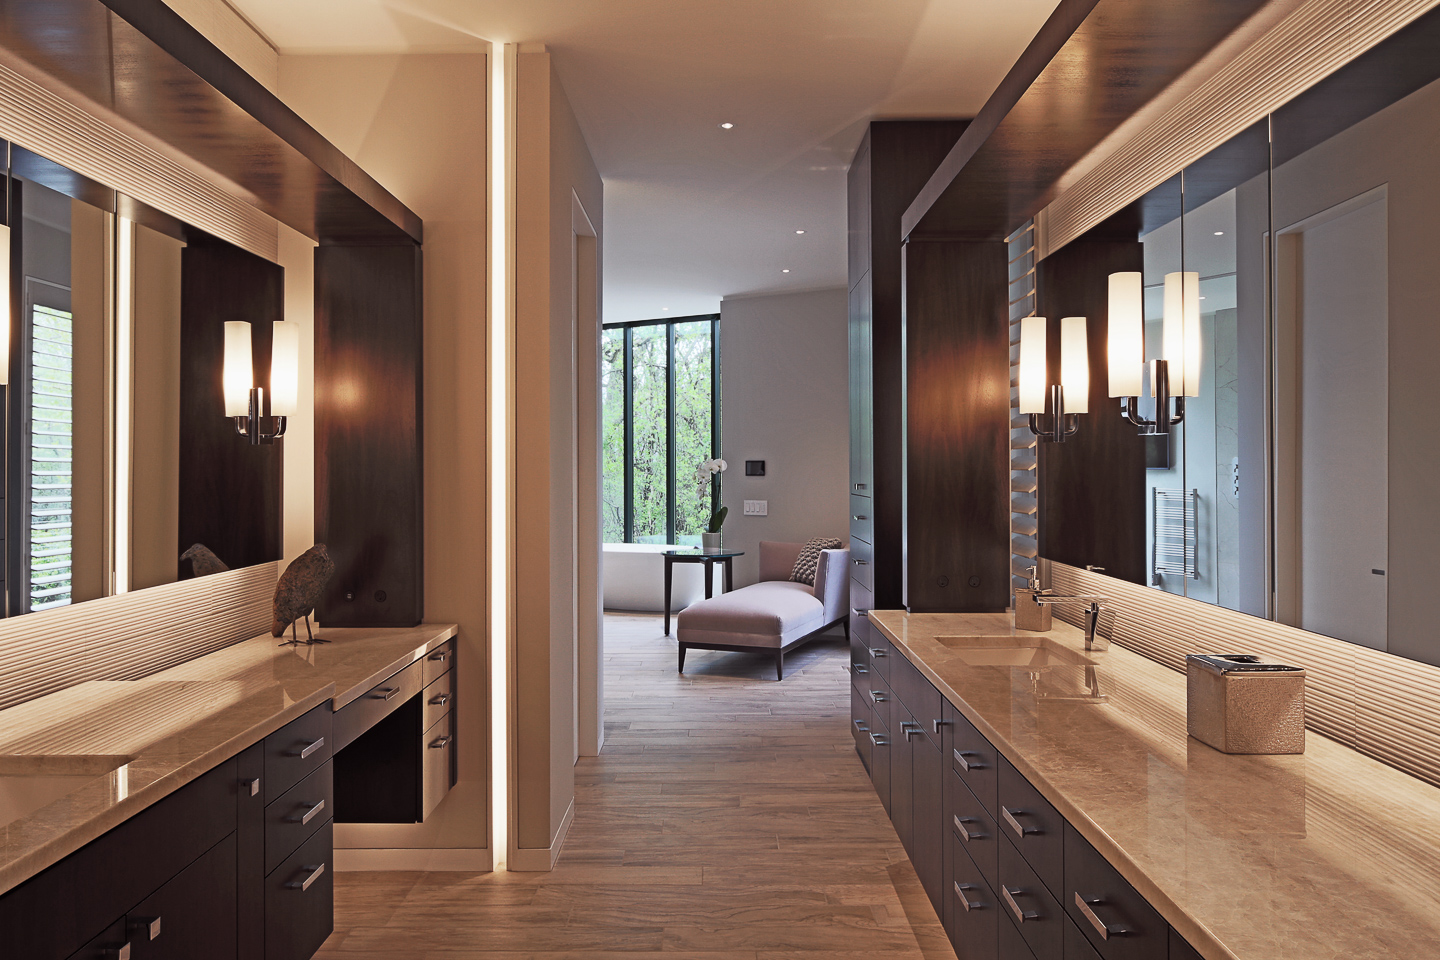 his and hers modern master bath floating vanities featuring dark wood, granite, and polished chrome fixtures, photographed by Jacob Rosenfeld